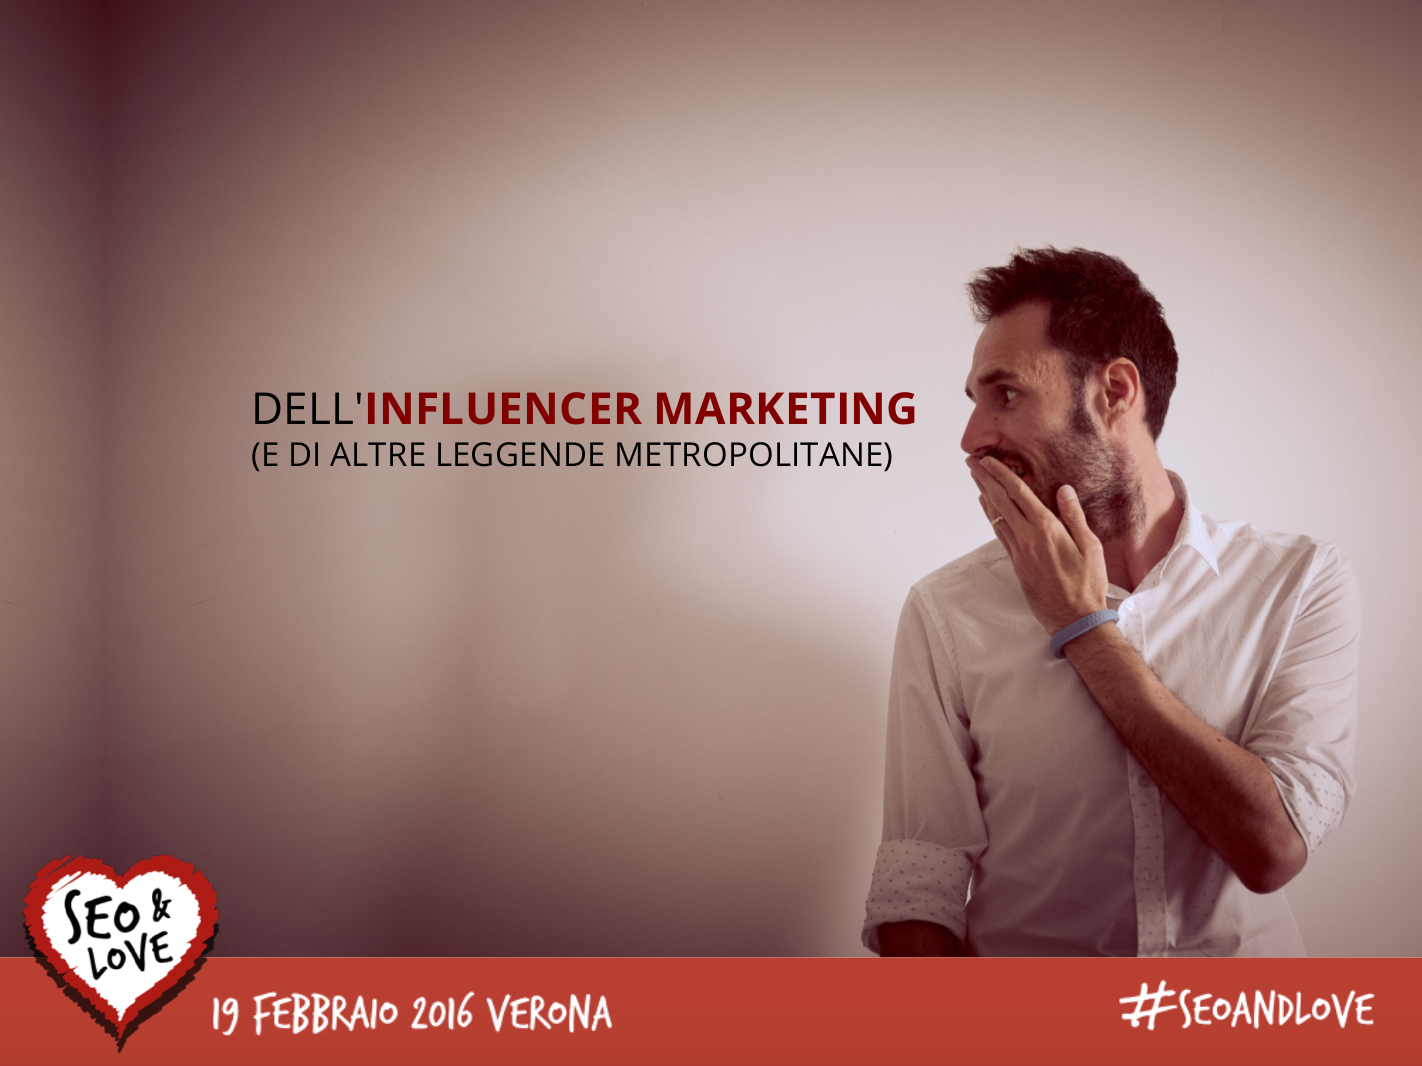 Dell'influencer marketing e di altre leggende metropolitane